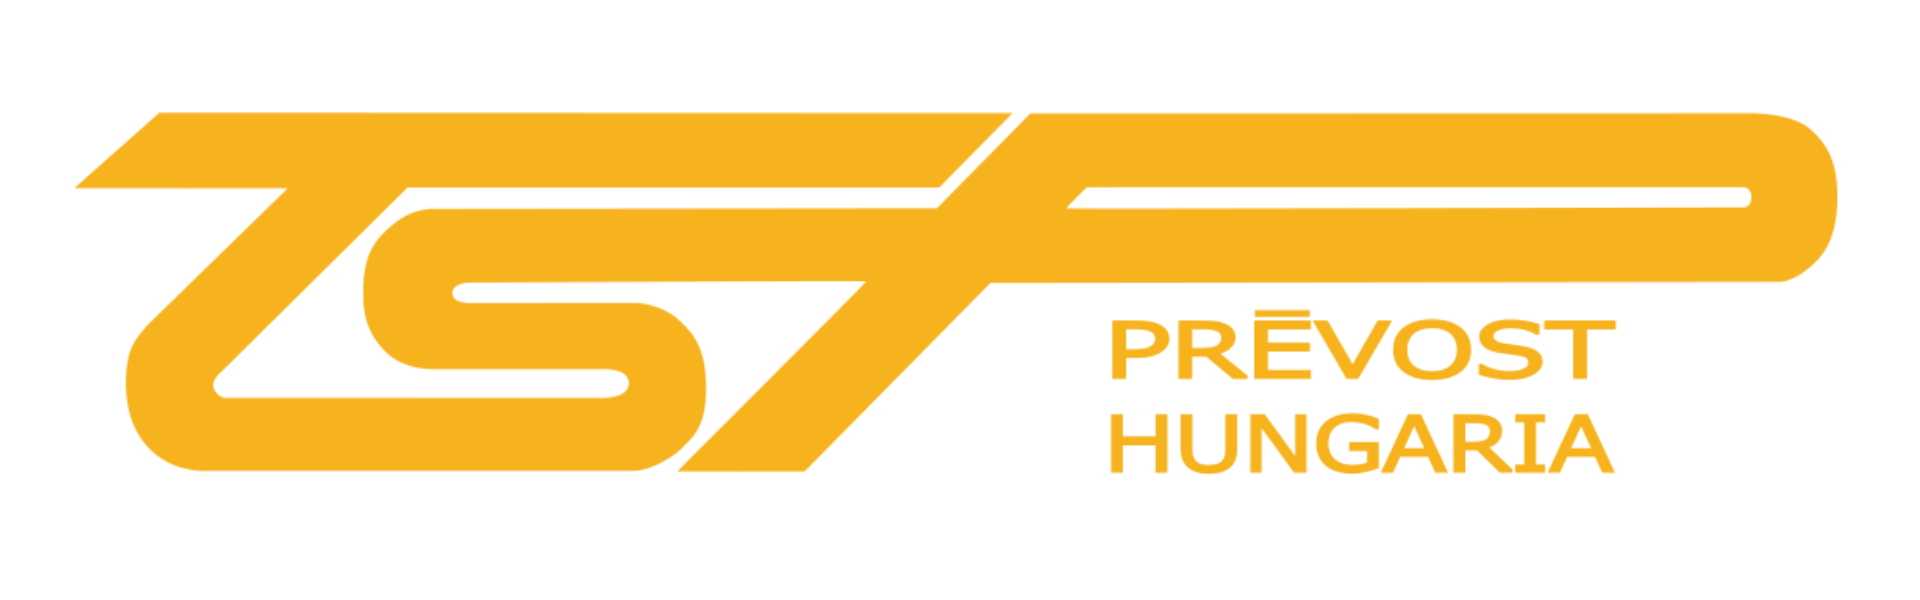 Prevo_logo_big_alpha